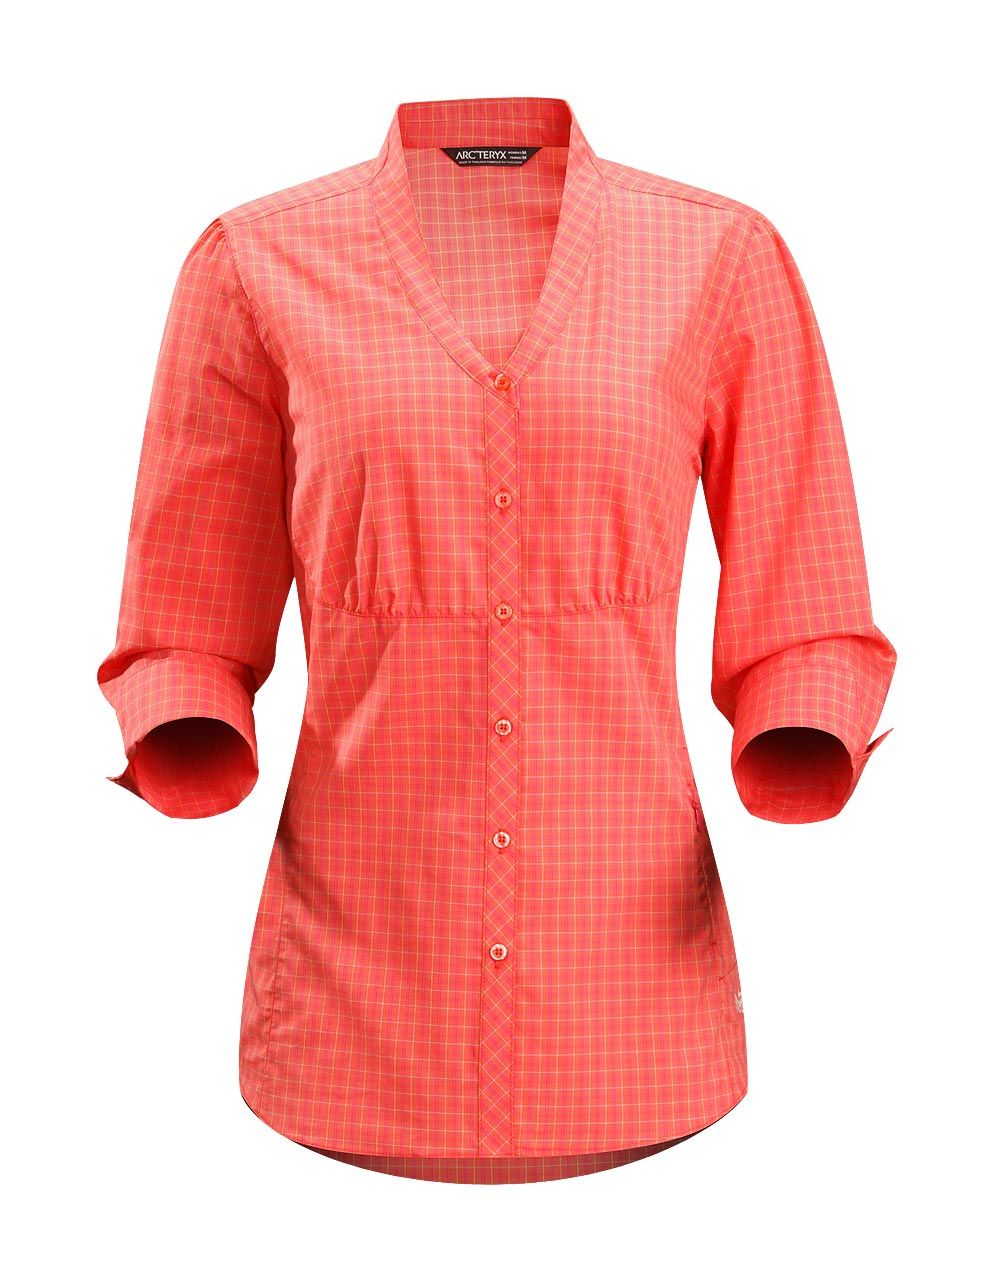 Arcteryx Autumn Coral Destina Shirt LS